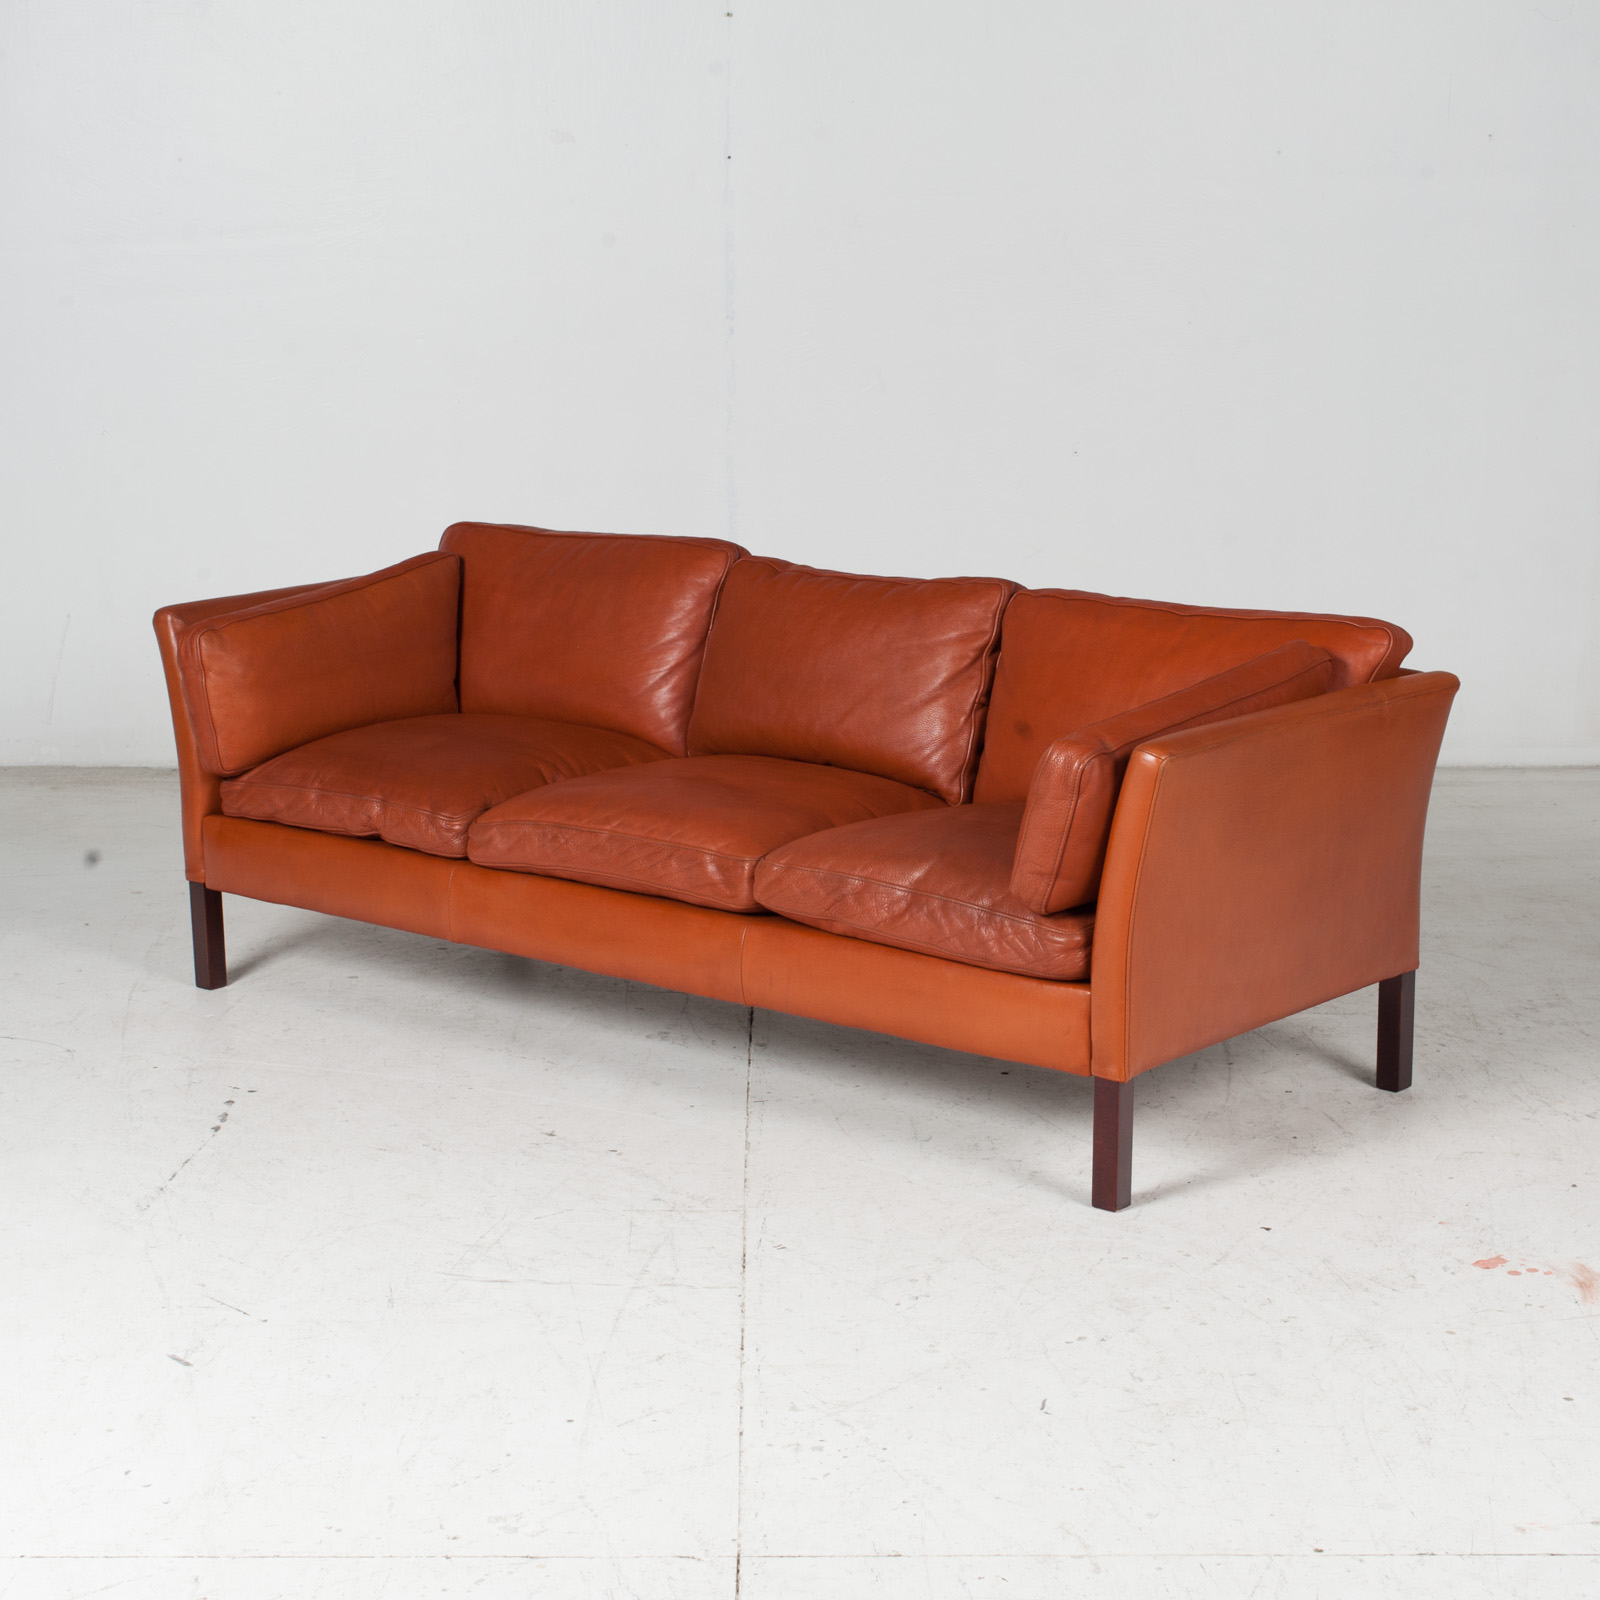 3 Seat Sofa By Stouby In Tan Leather, 1960s, Denmark 5